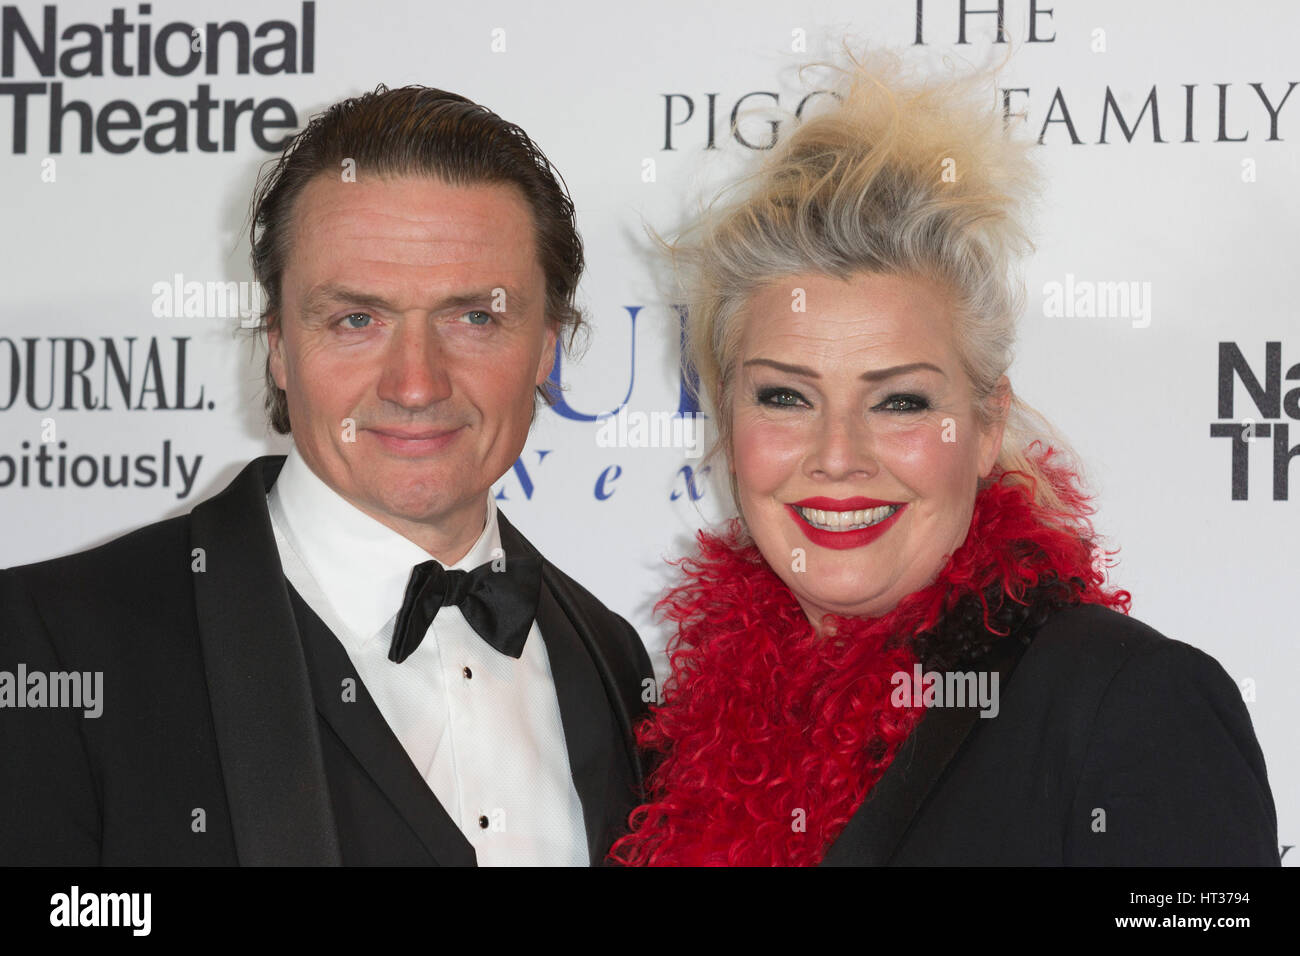 Actor Hal Fowler with singer Kim Wilde